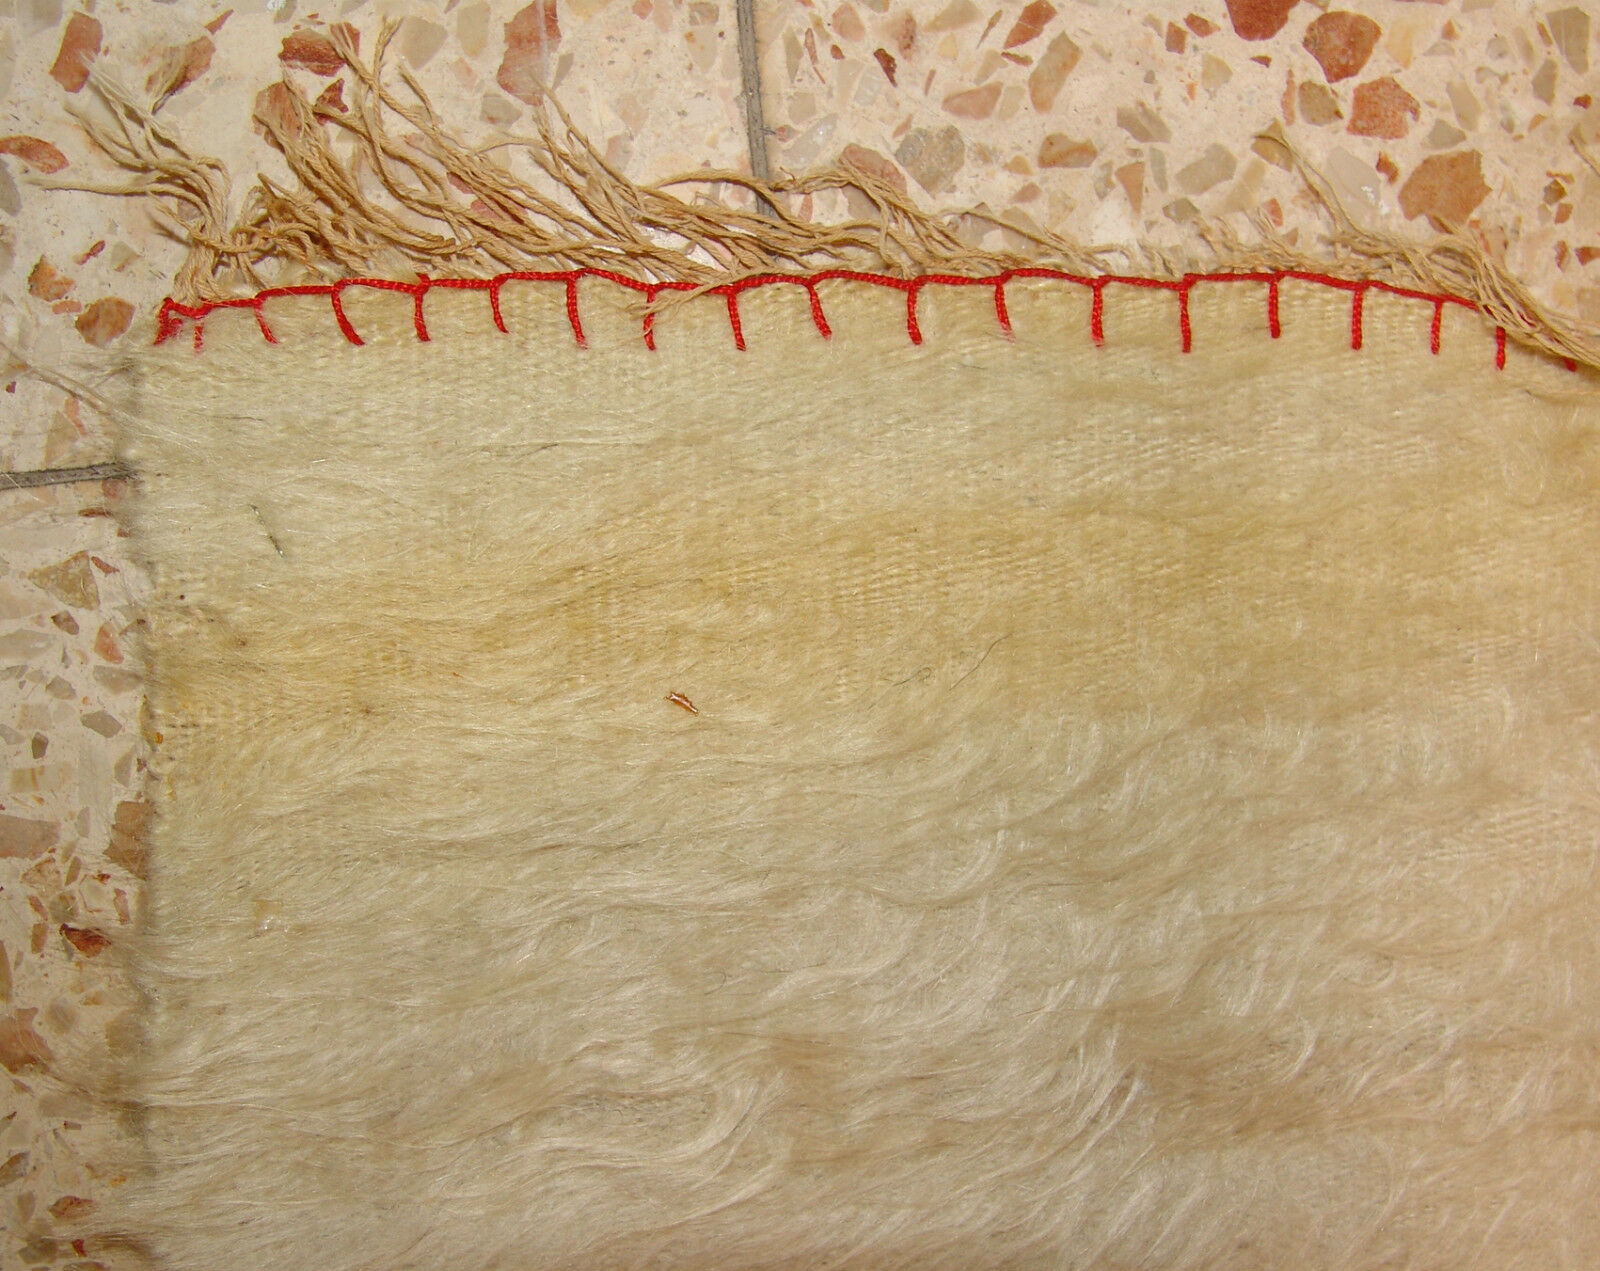 Islamic Antique blanket fabric embroidery ? rug ? suzani ? unknown middle east